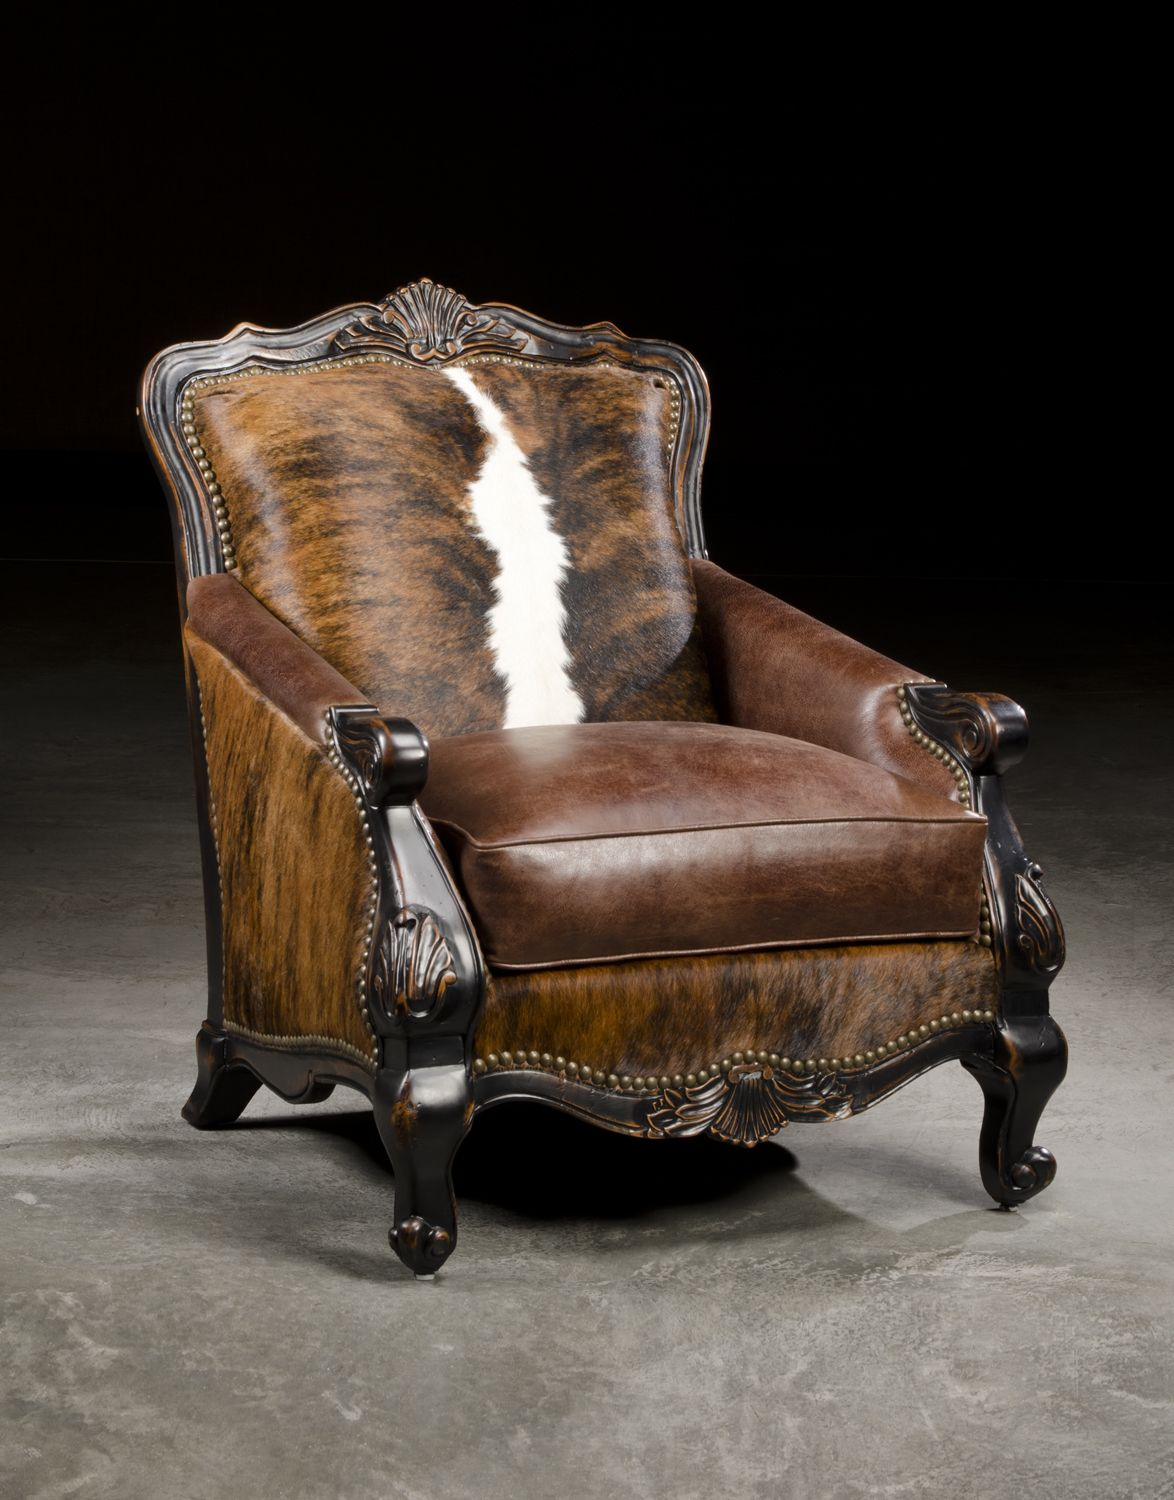 A Stately Leather Cowhide Library Chair Makes A Great Statement In Any  Library Room. Or